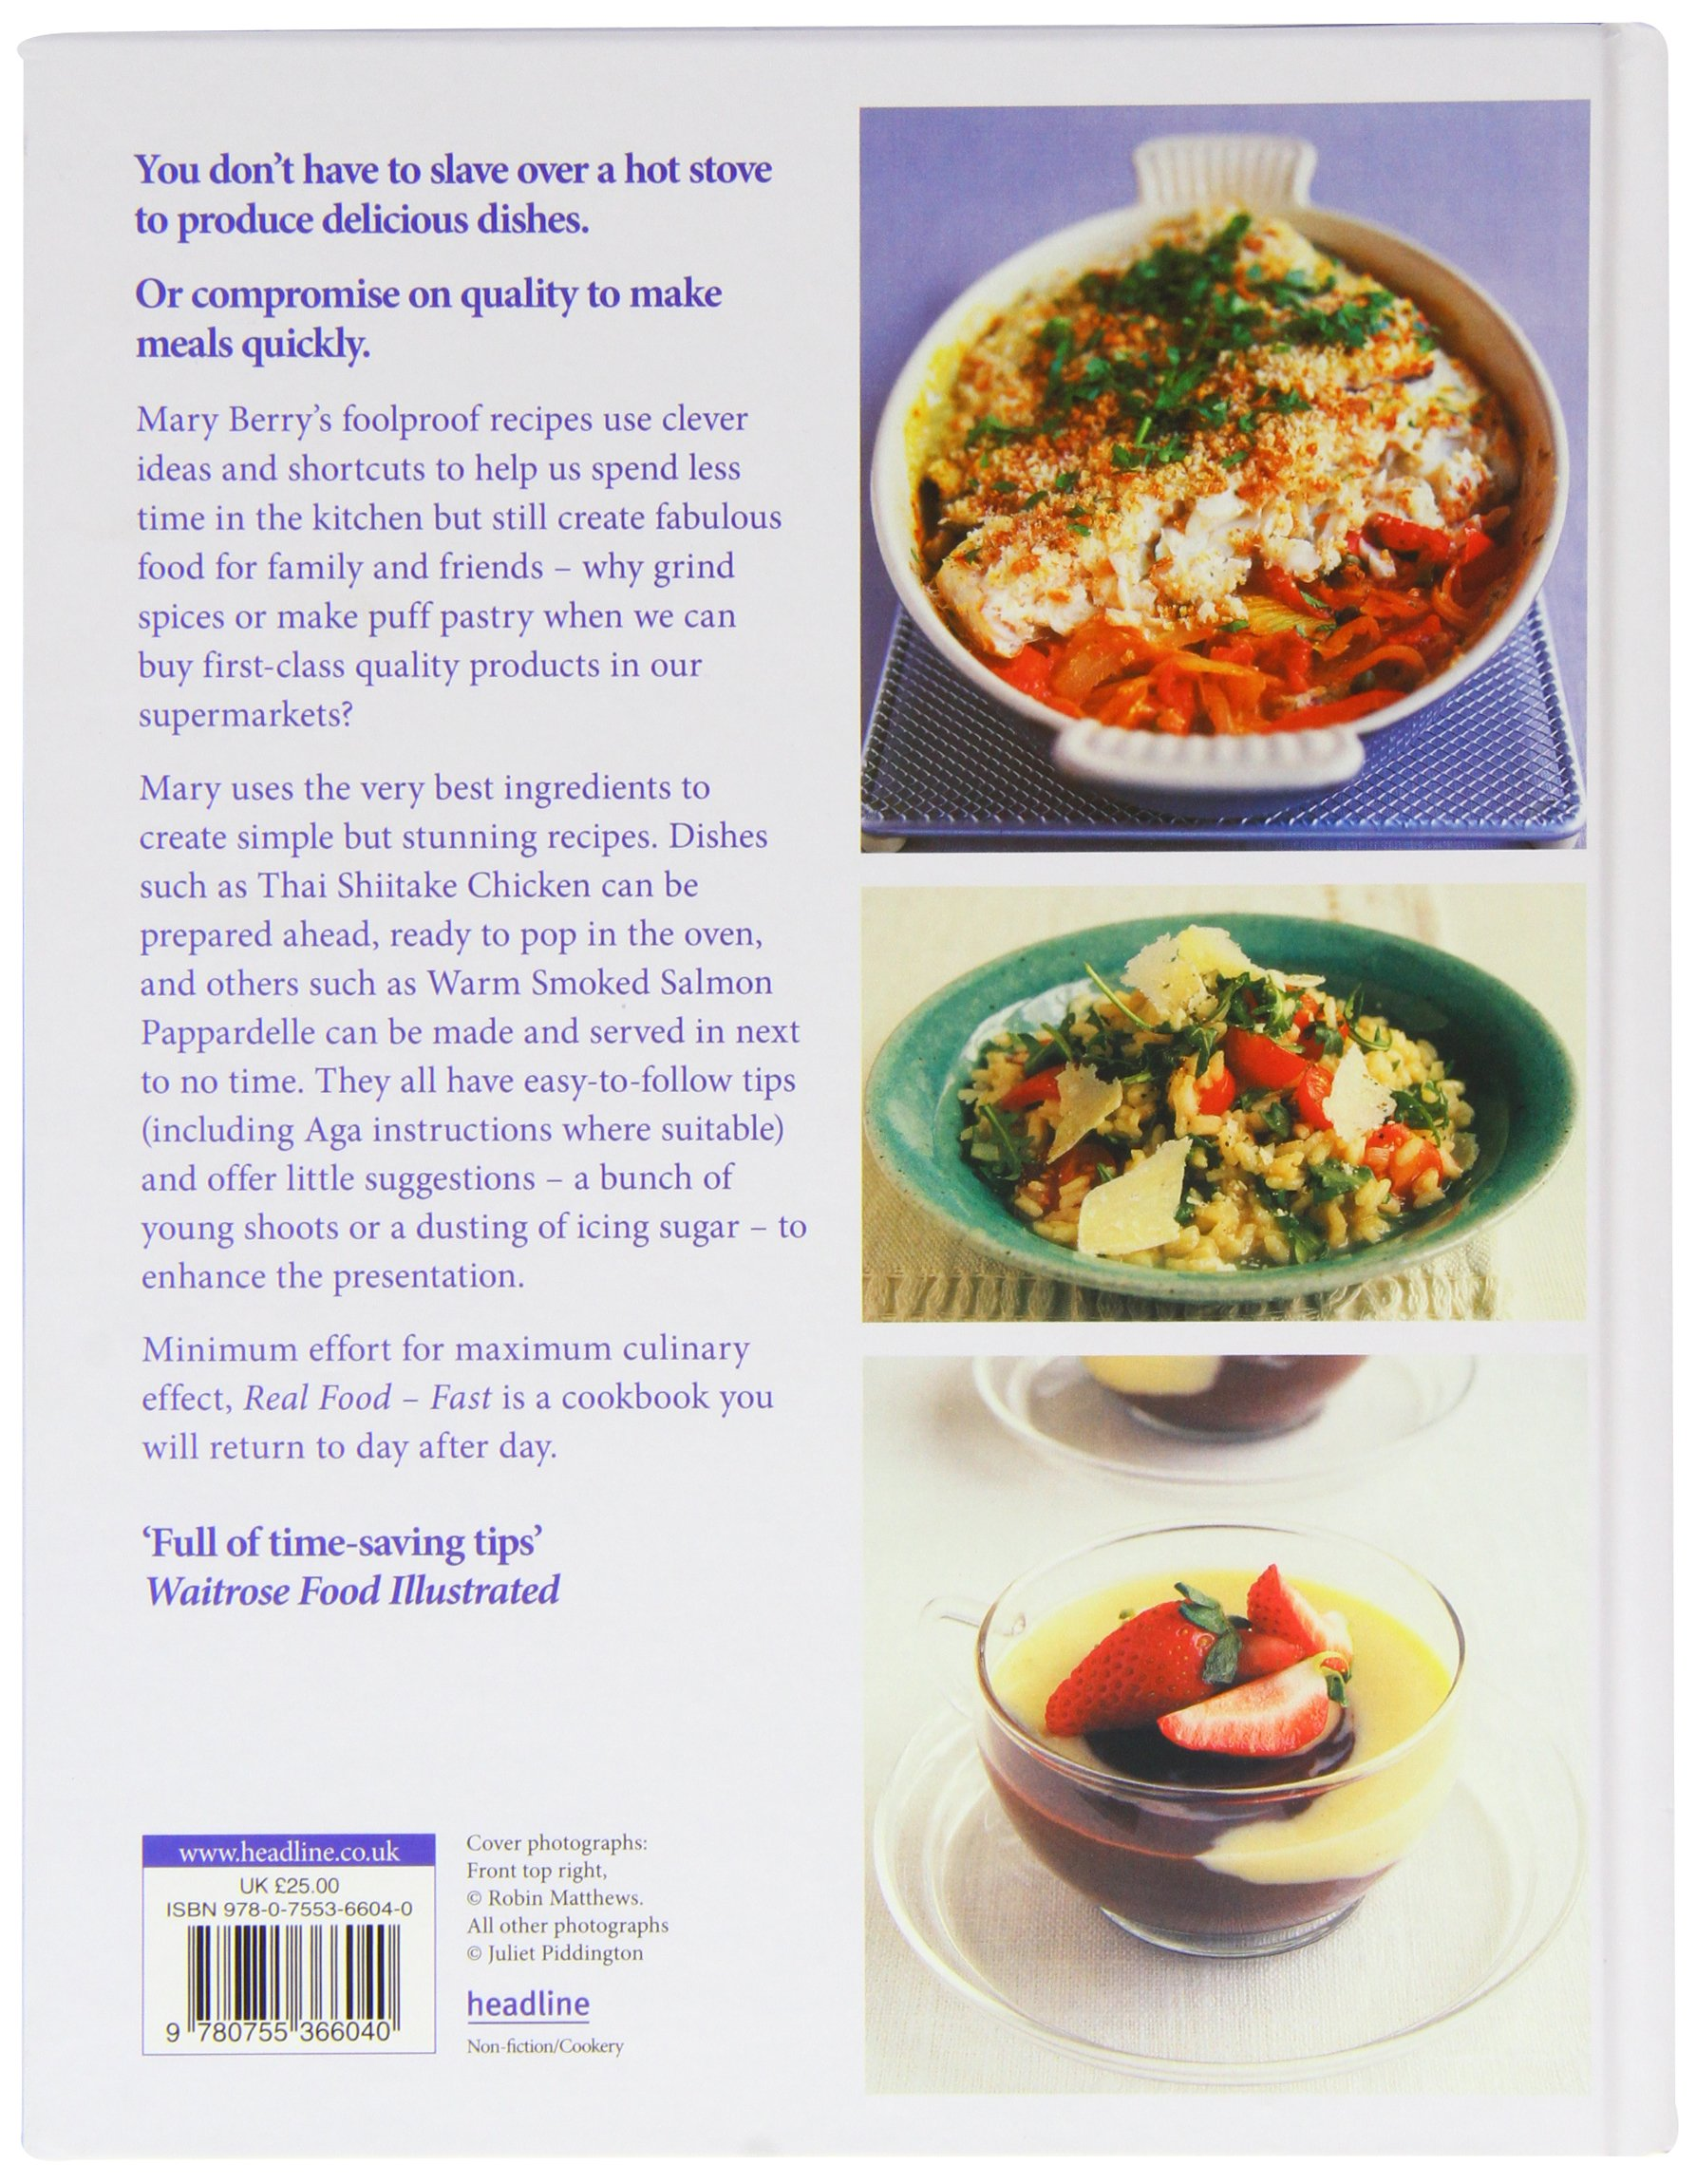 Real Food - Fast: Mary Berry: 9780755366040: Amazon.com: Books